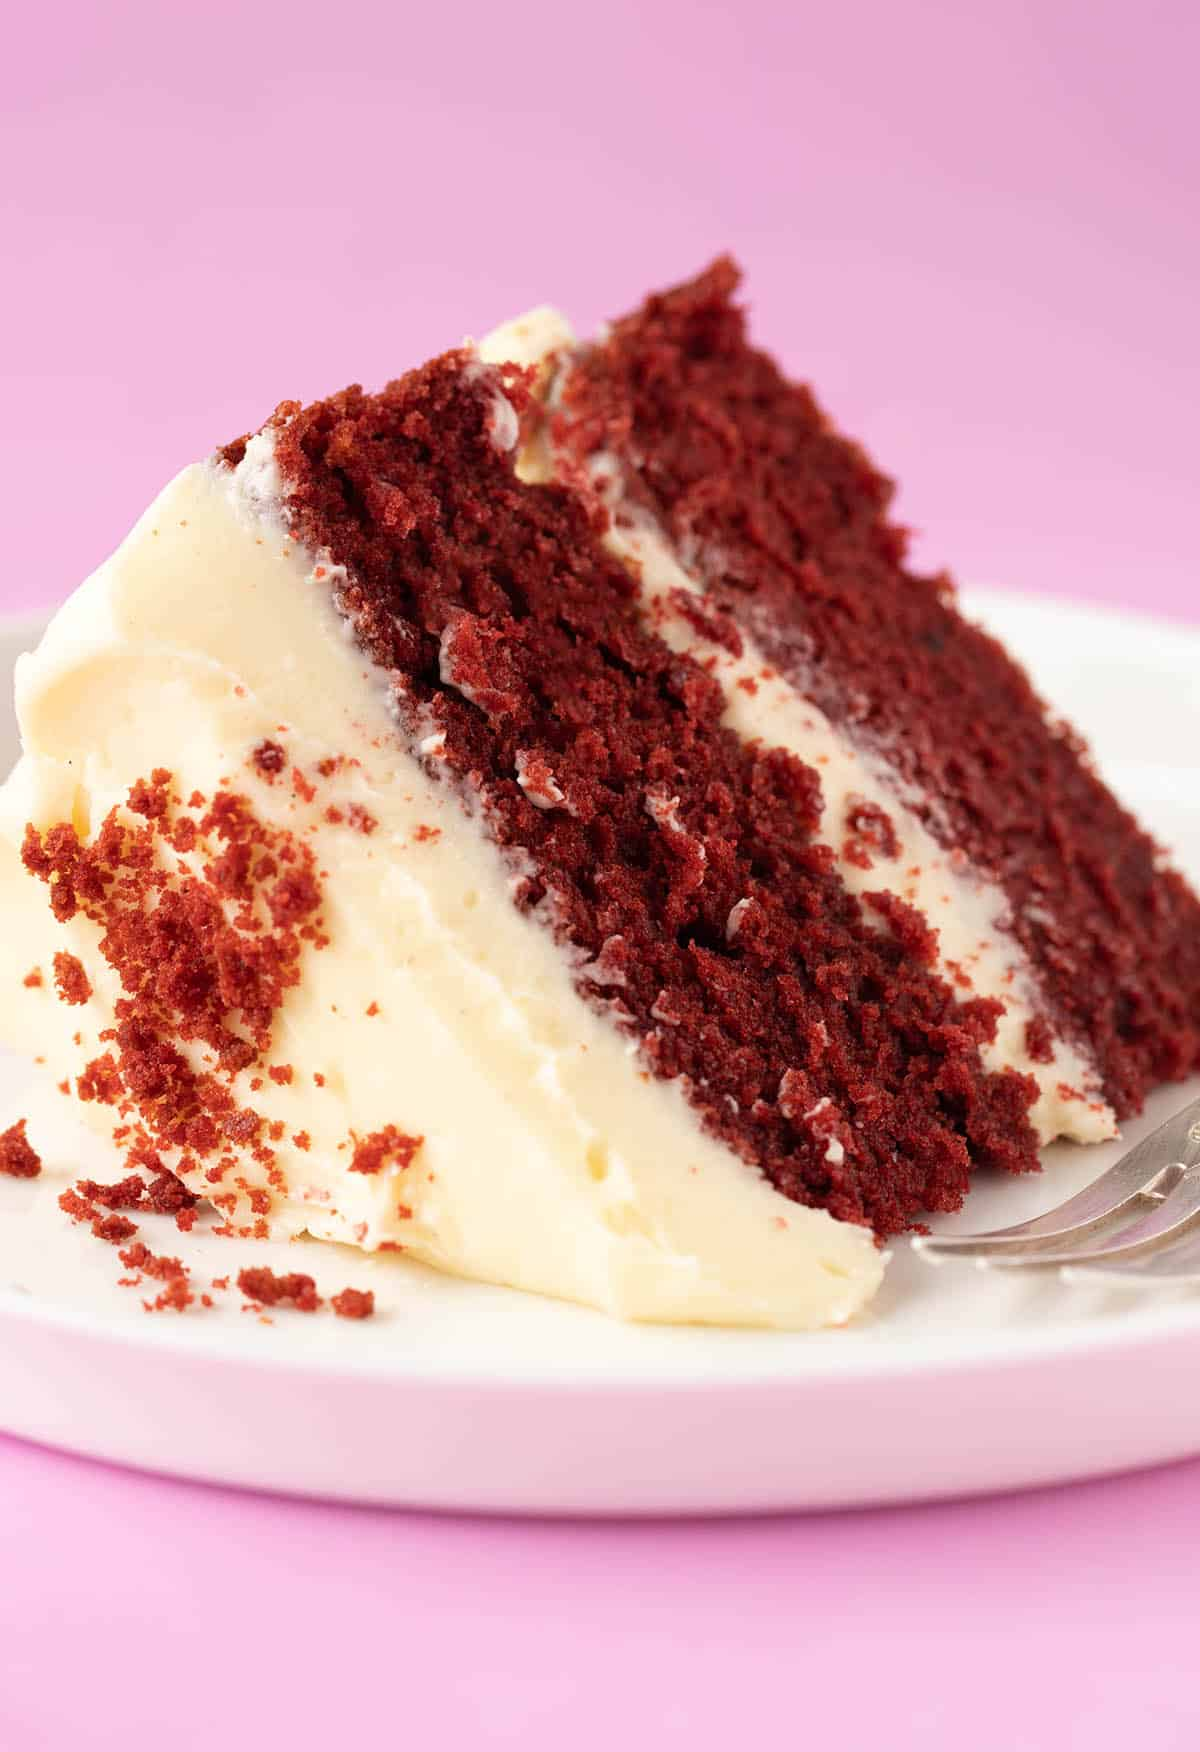 A close up of a piece of Red Velvet Cake with a sweet, buttery crumb